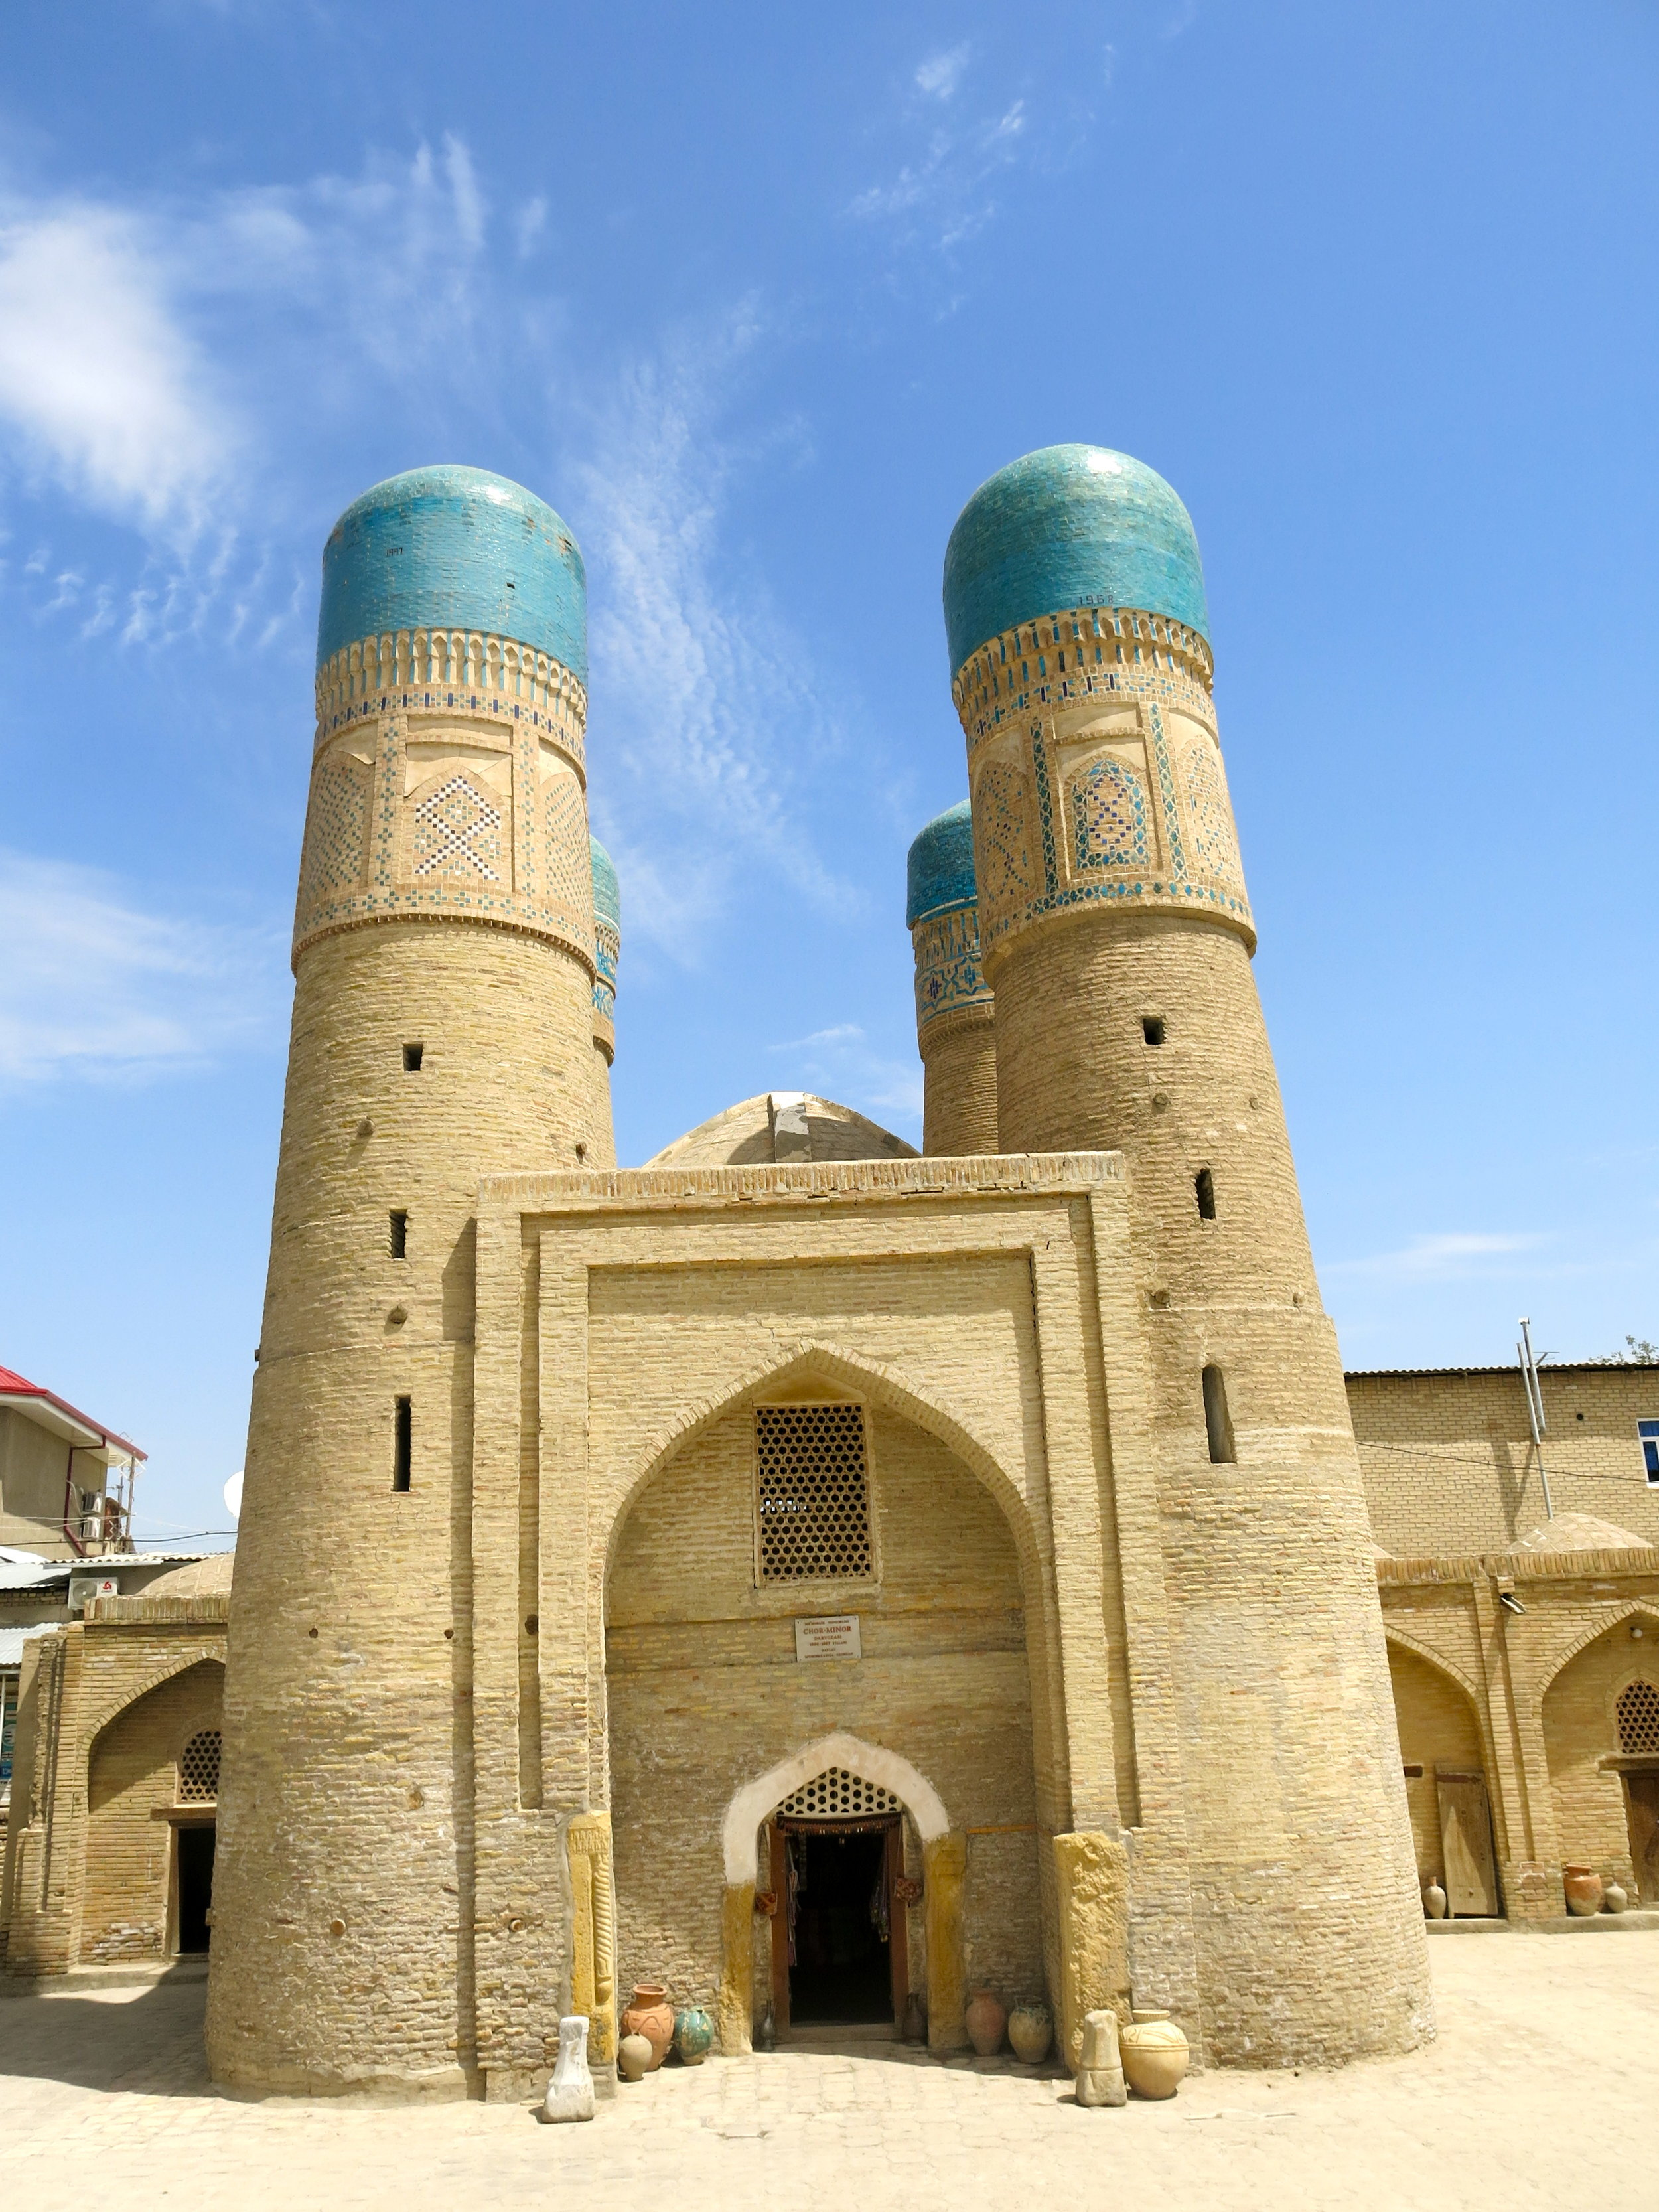 The Chor Minor and its 4 iconic towers